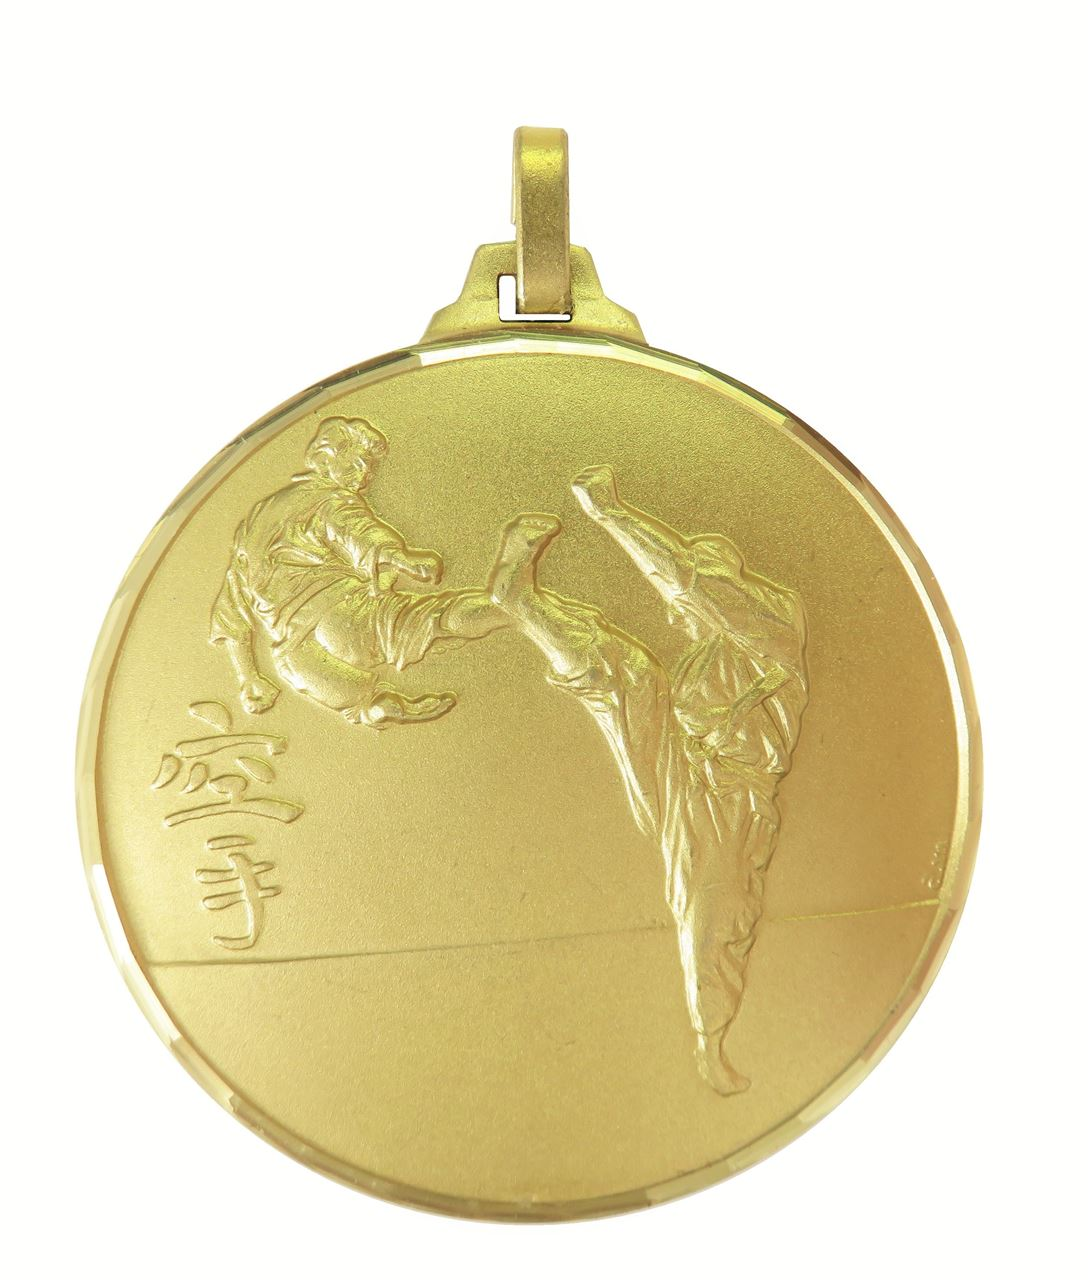 Gold Faceted Karate Medal (size: 52mm) - 127F